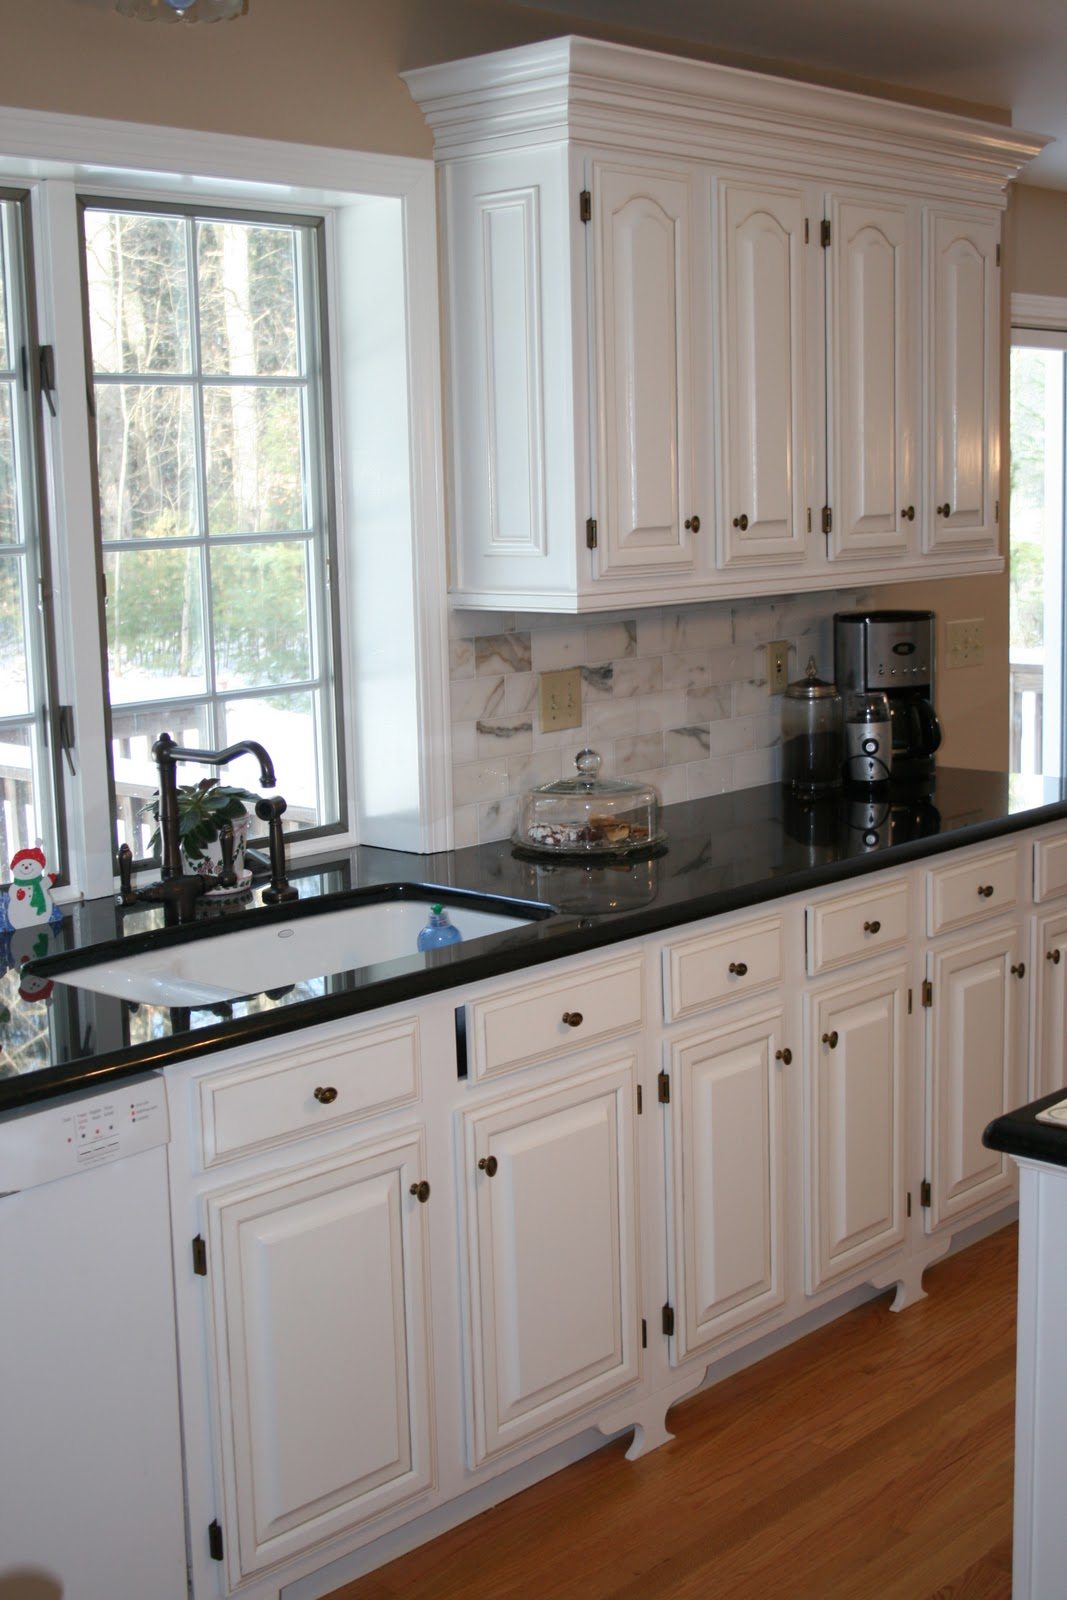 Design notes kitchen remodel completed - White kitchens pinterest ...